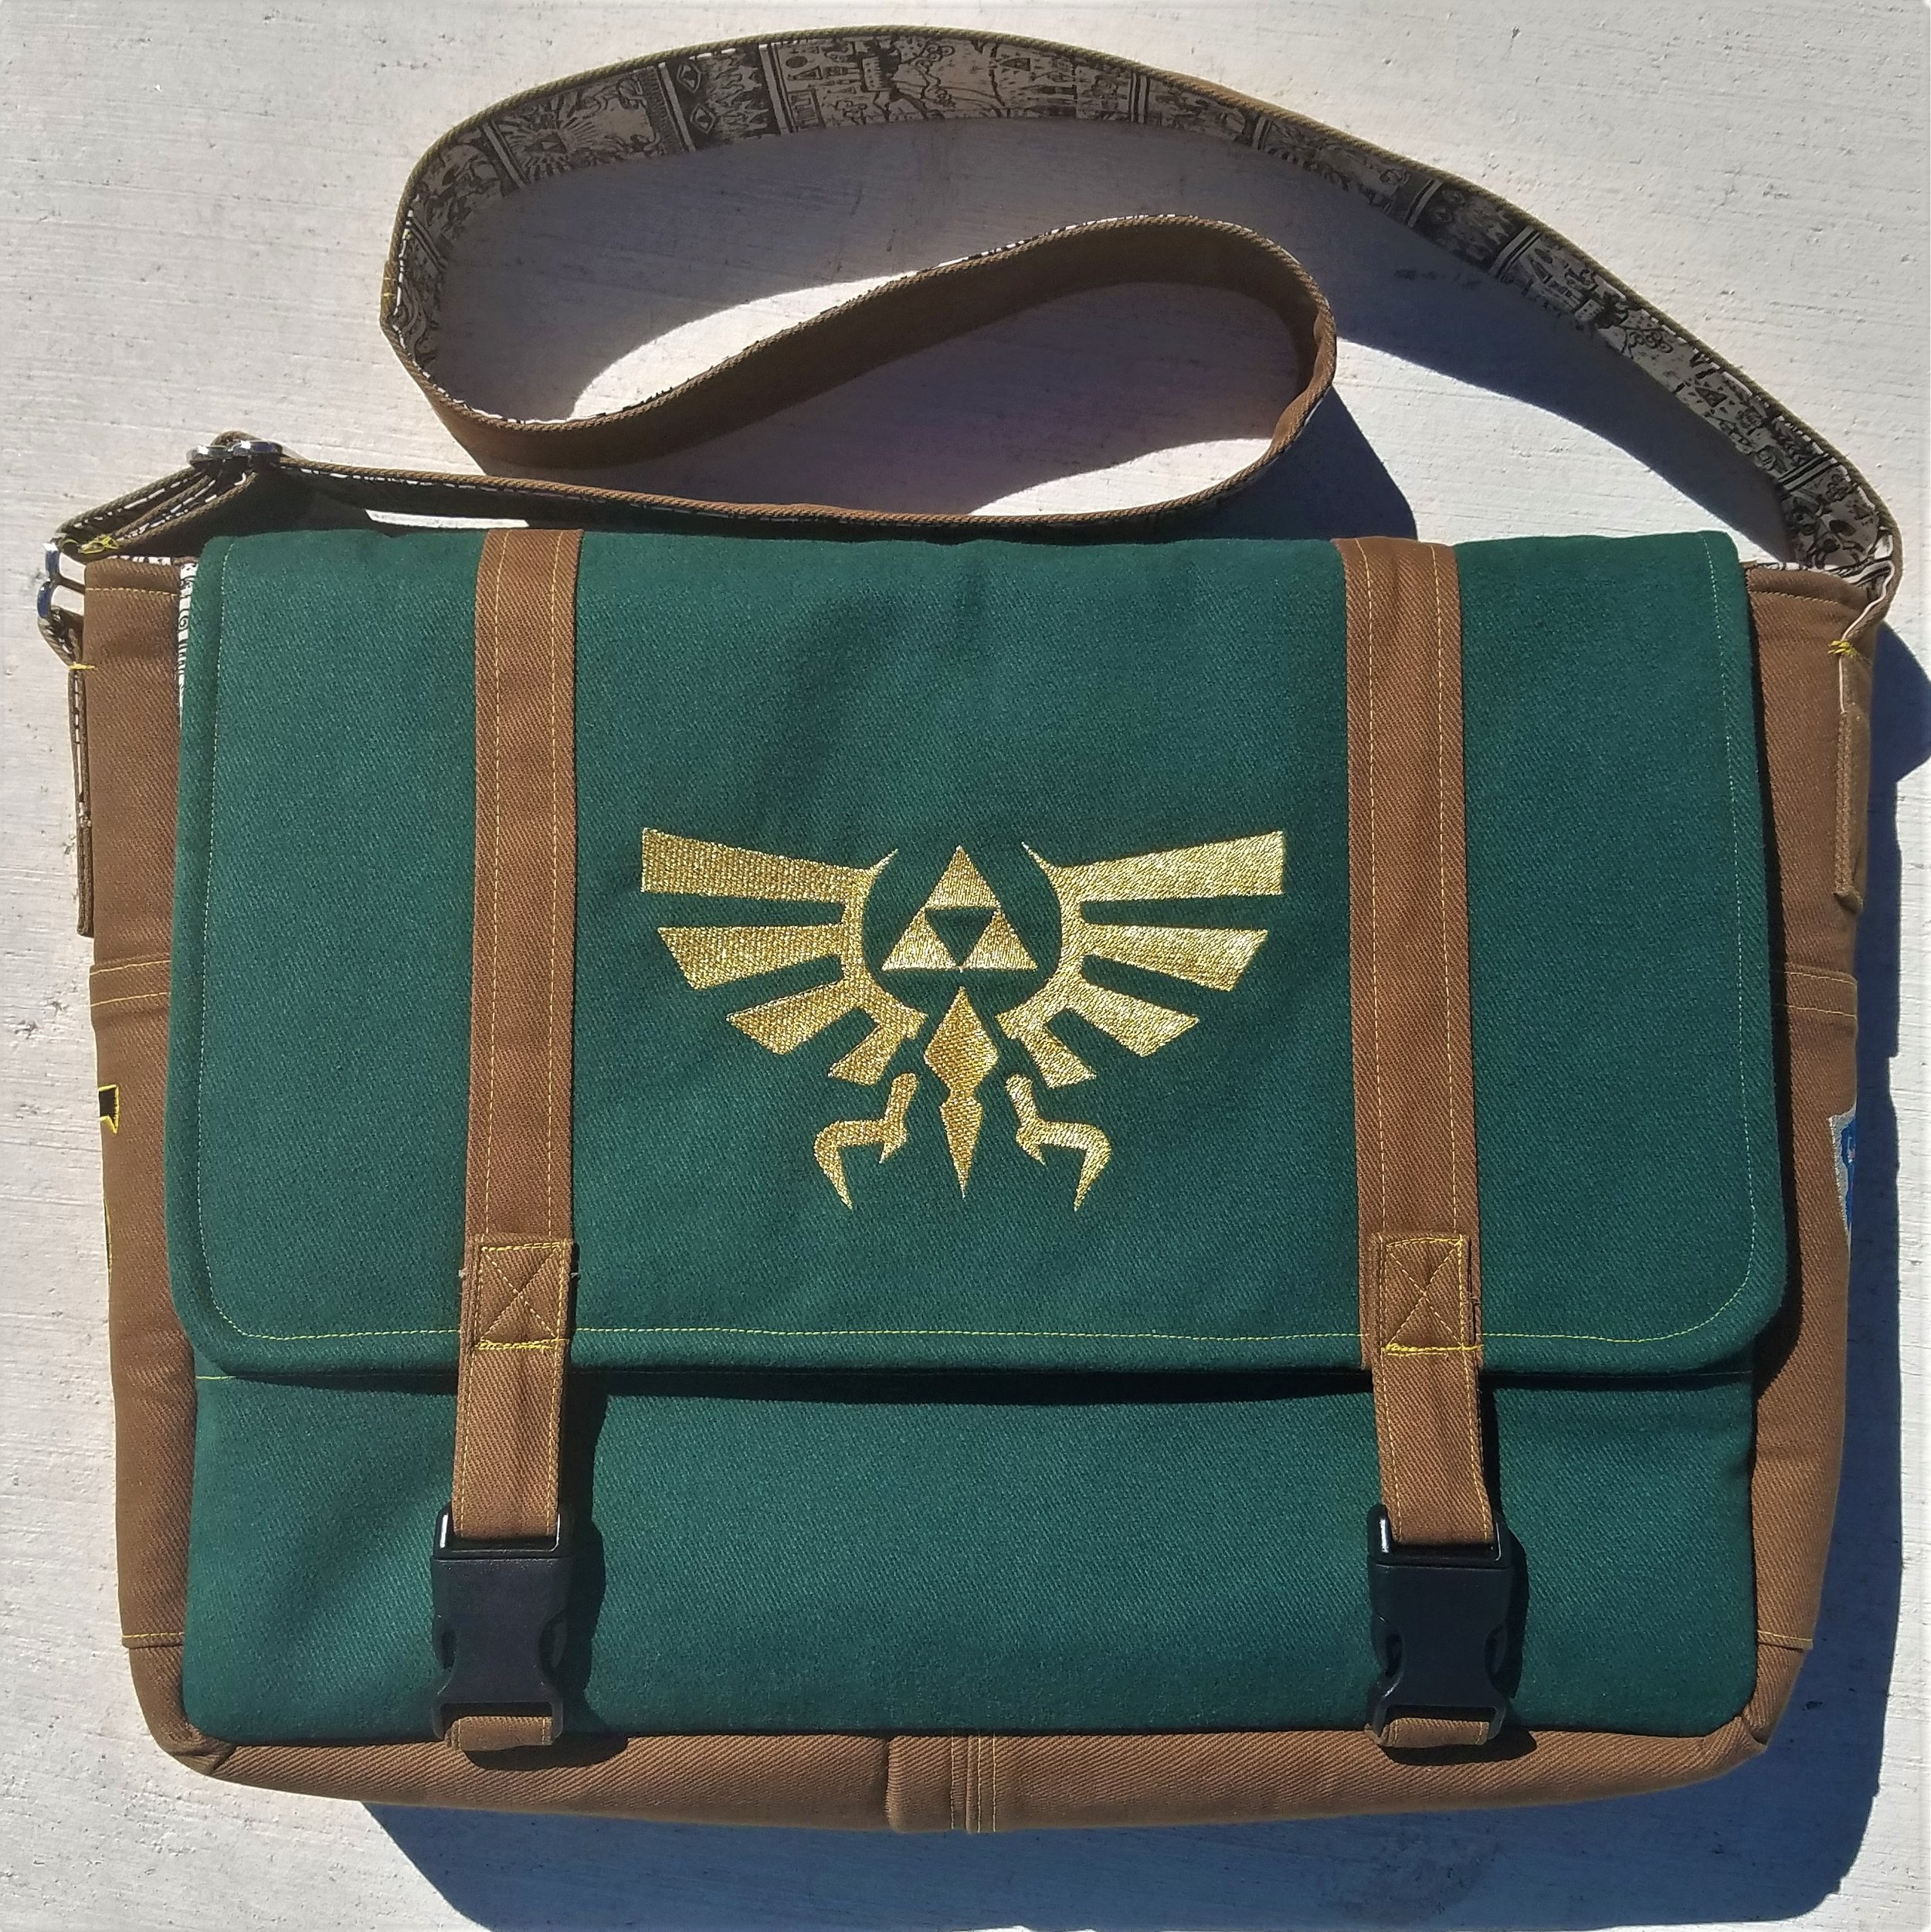 Tock Custom - Legend of Zelda Messenger Bag